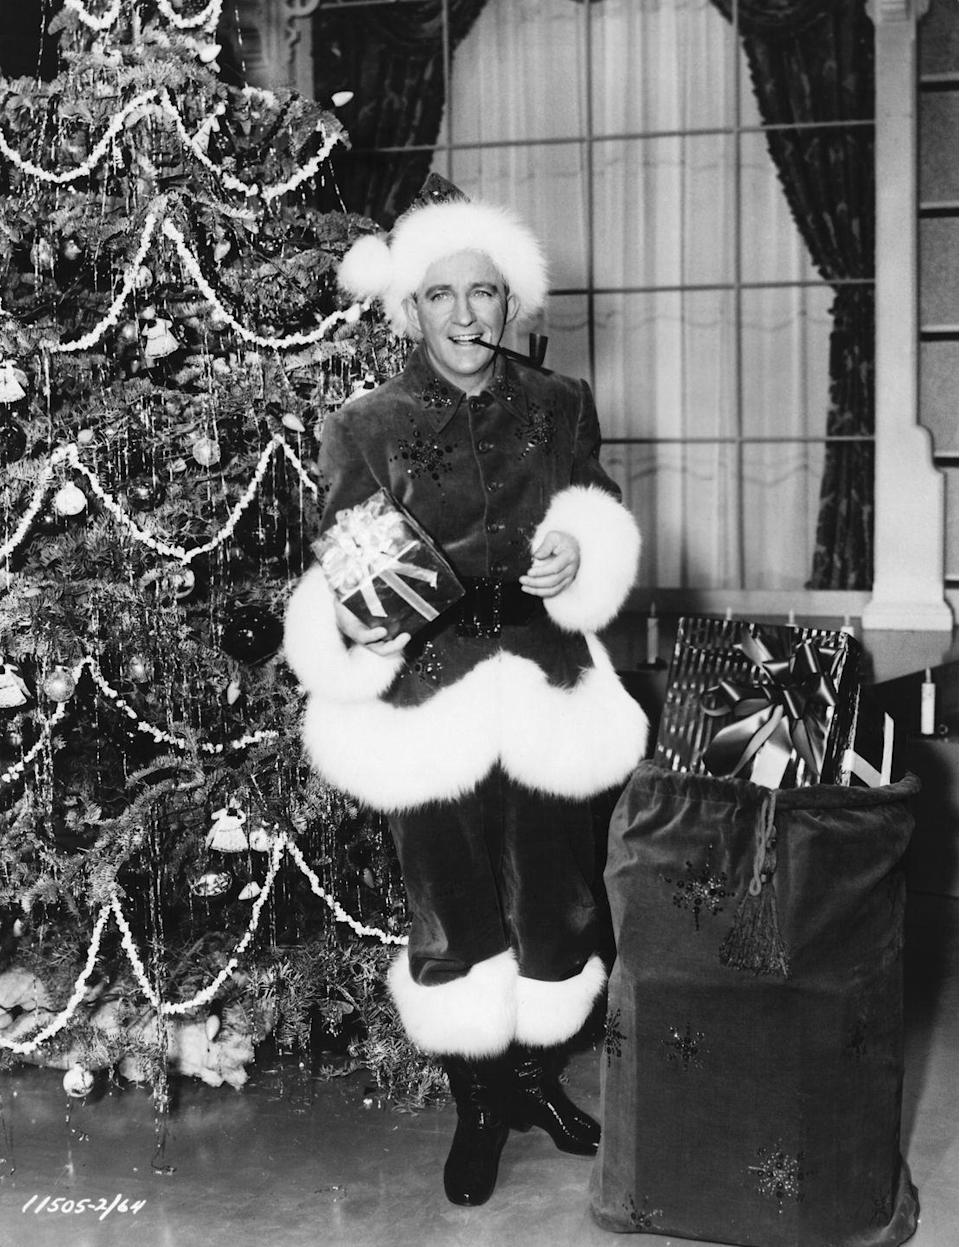 <p>The talented singer/actor dons a Santa suit and smoking pipe as he poses in front of a Christmas tree to promote his holiday musical film, Paramount's <em>White Christmas </em>(1954).<br></p>